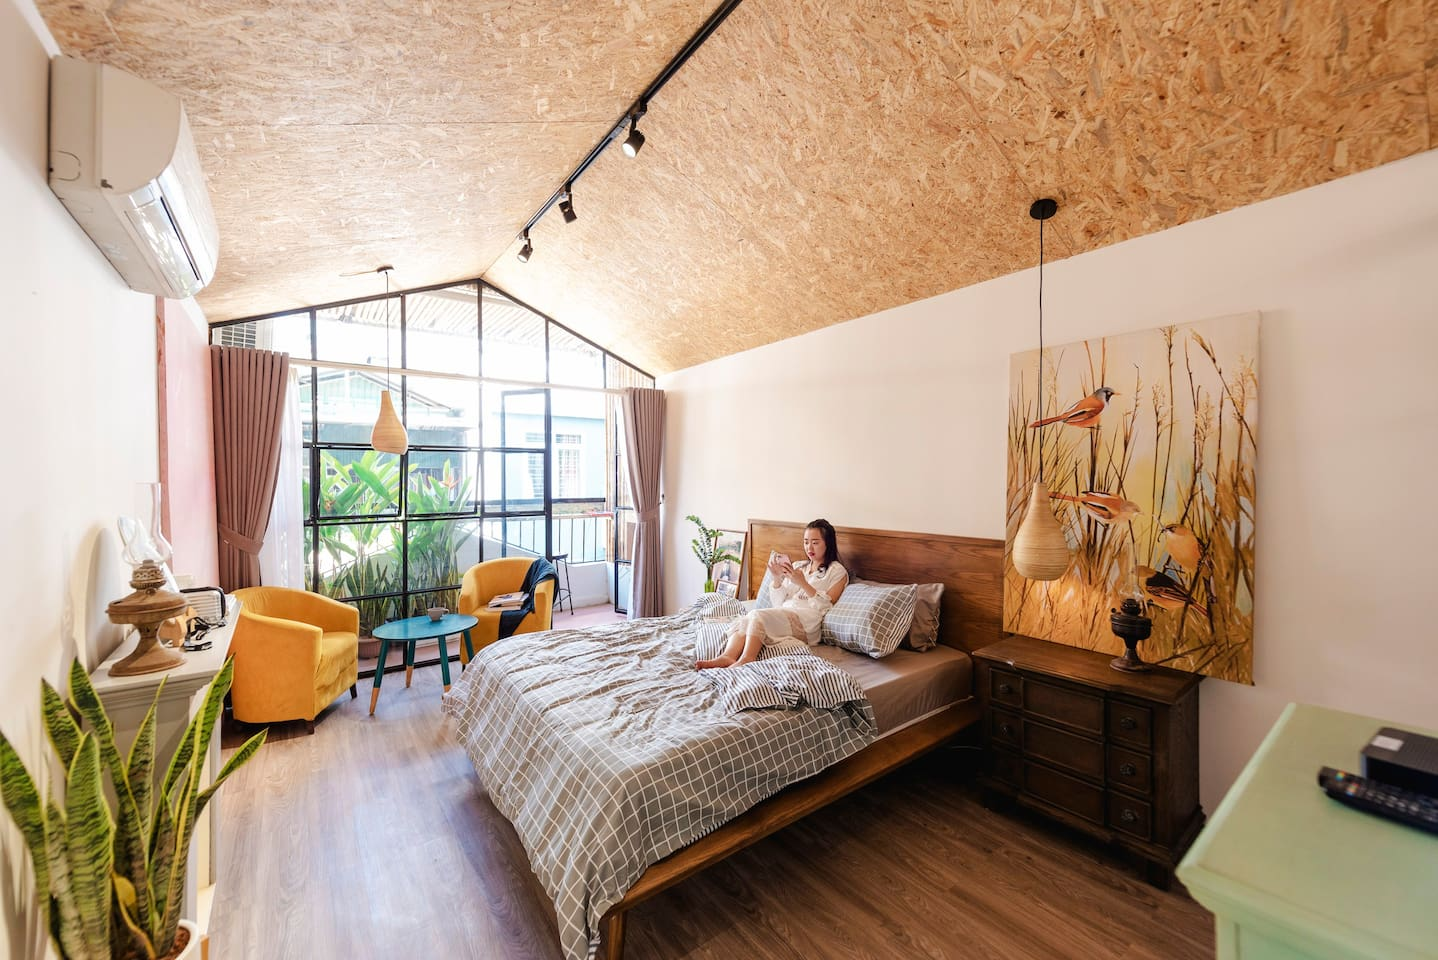 This rooftop bedroom is located on the 3rd floor of a complex house with coffee shop and serviced apartments on top.